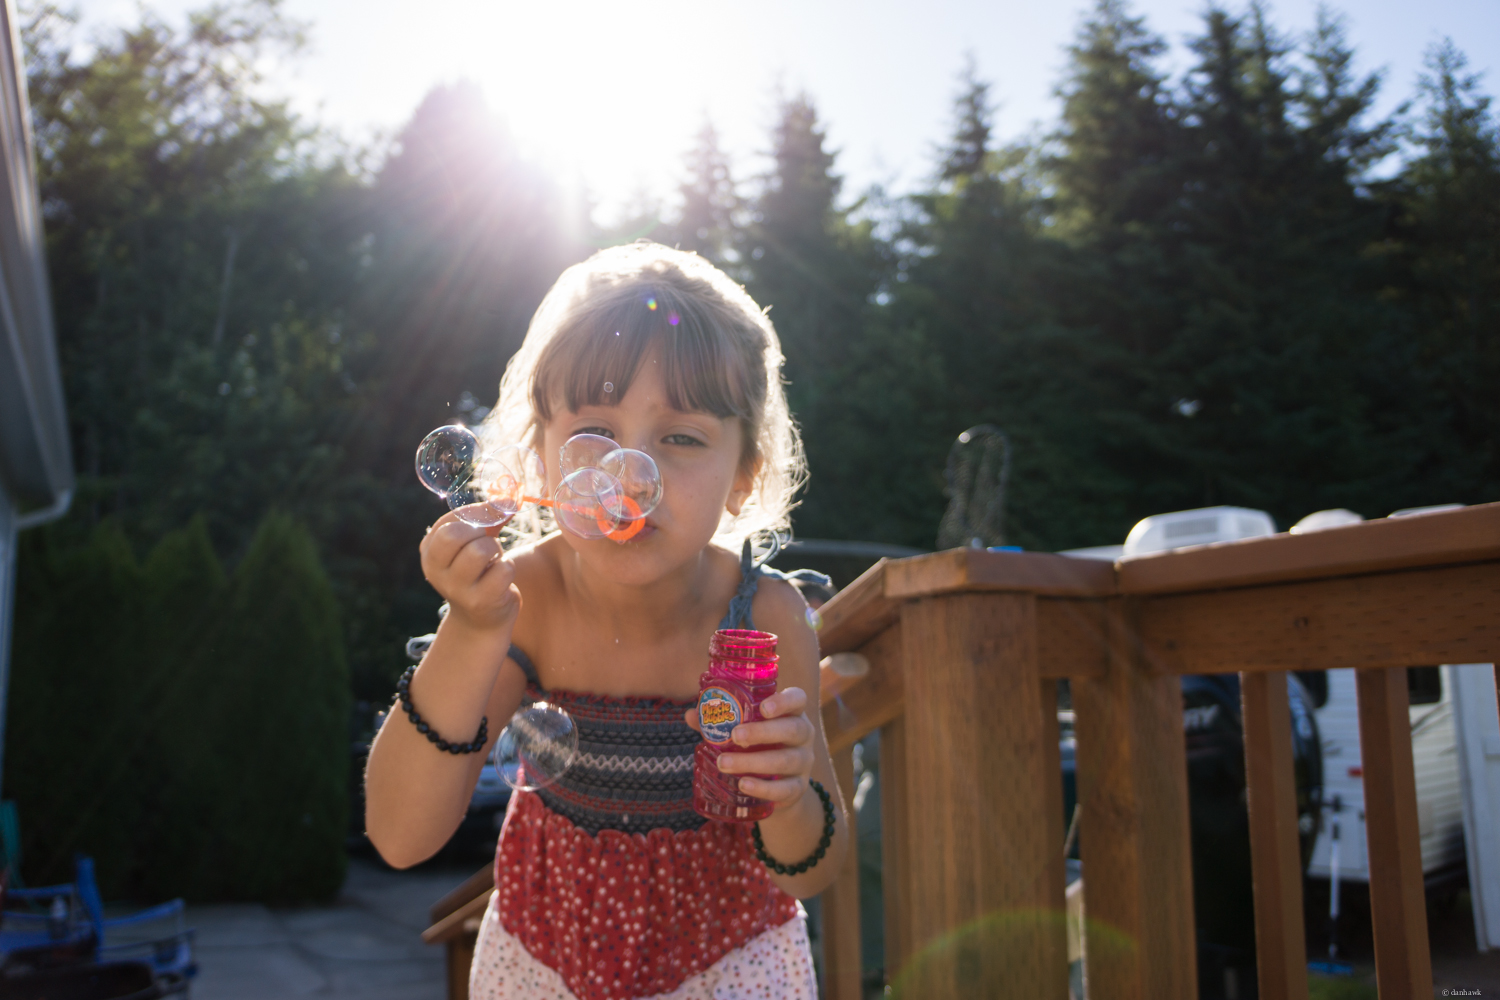 Blowin' Bubbles | July 4th